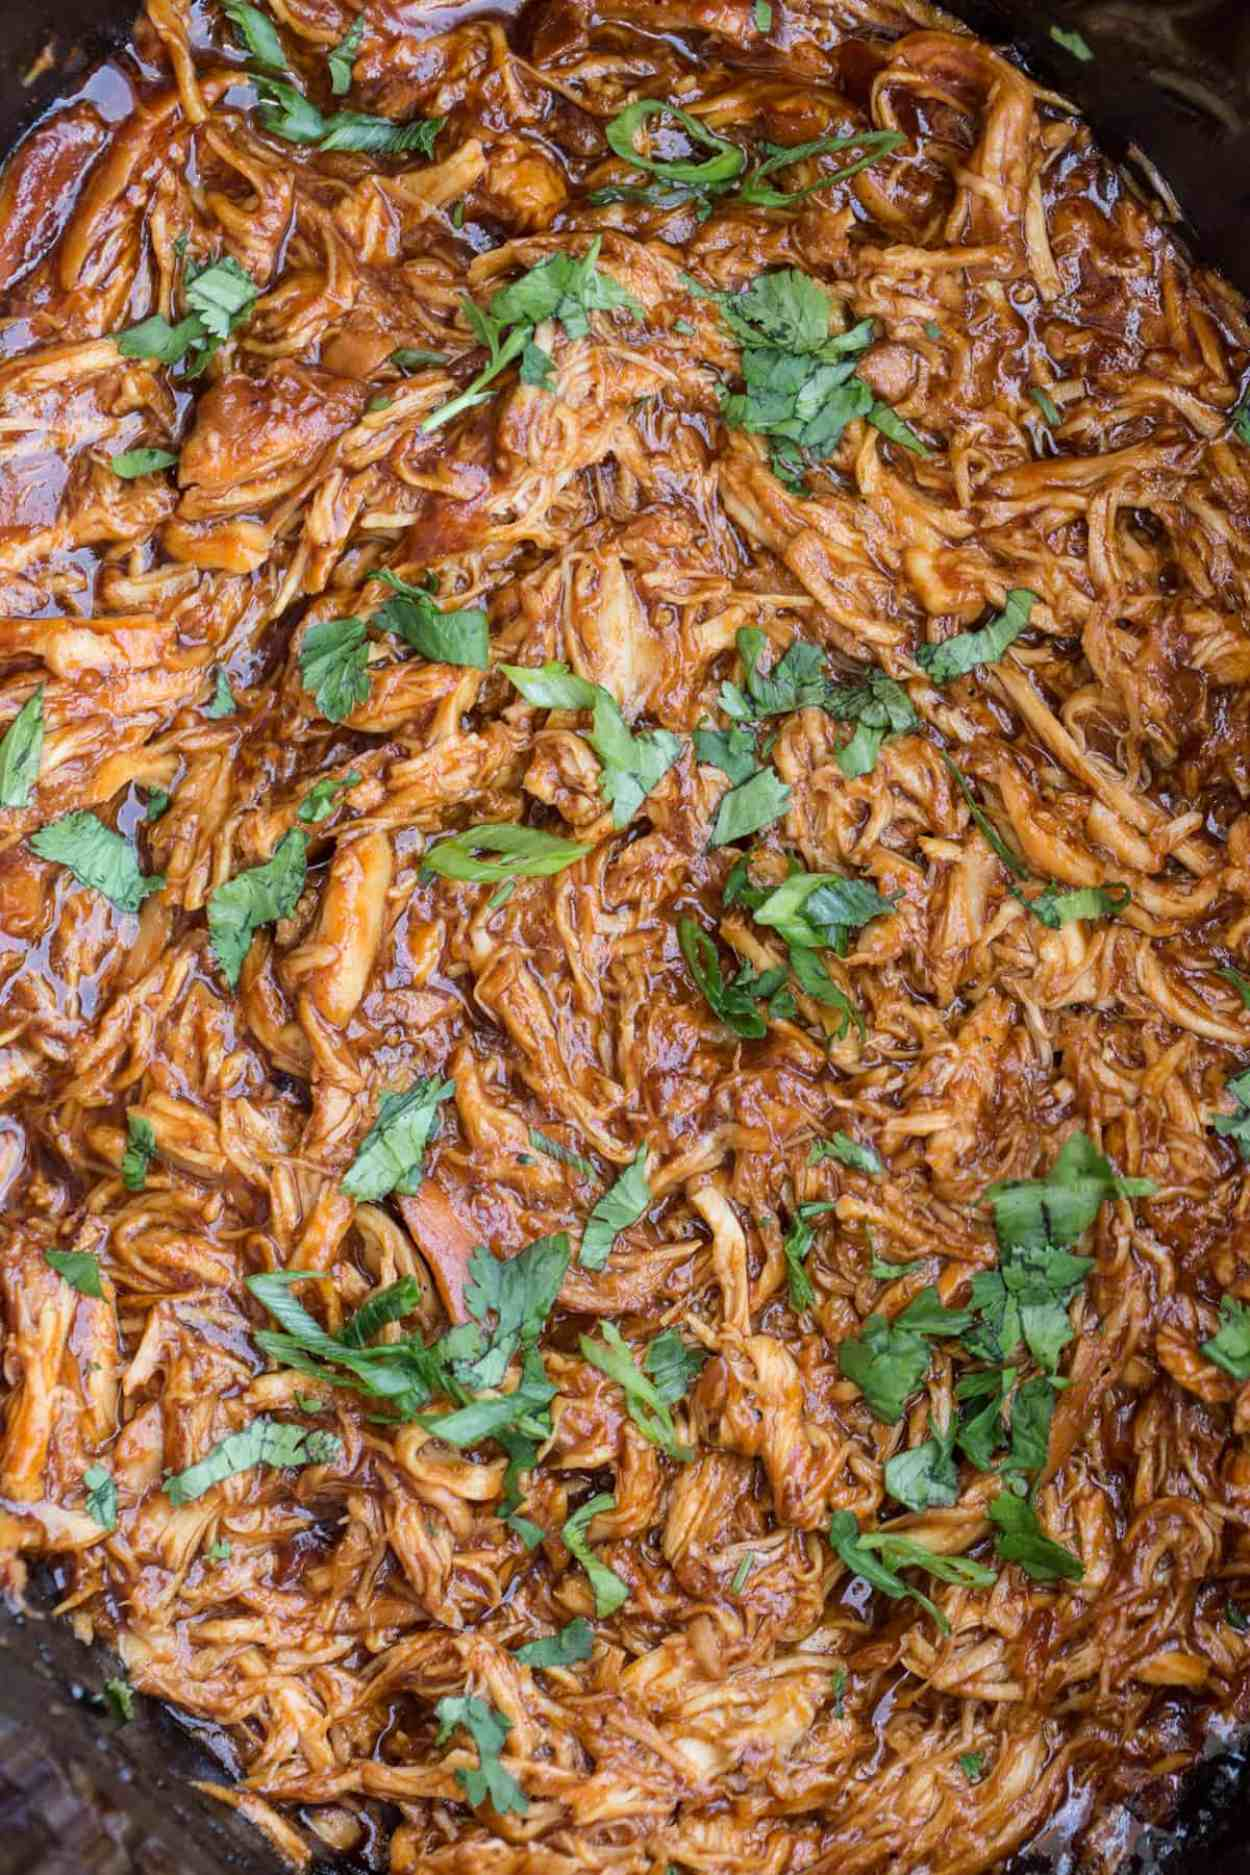 BBQ pulled chicken crock pot recipe topped with fresh greens in a slow cooker.